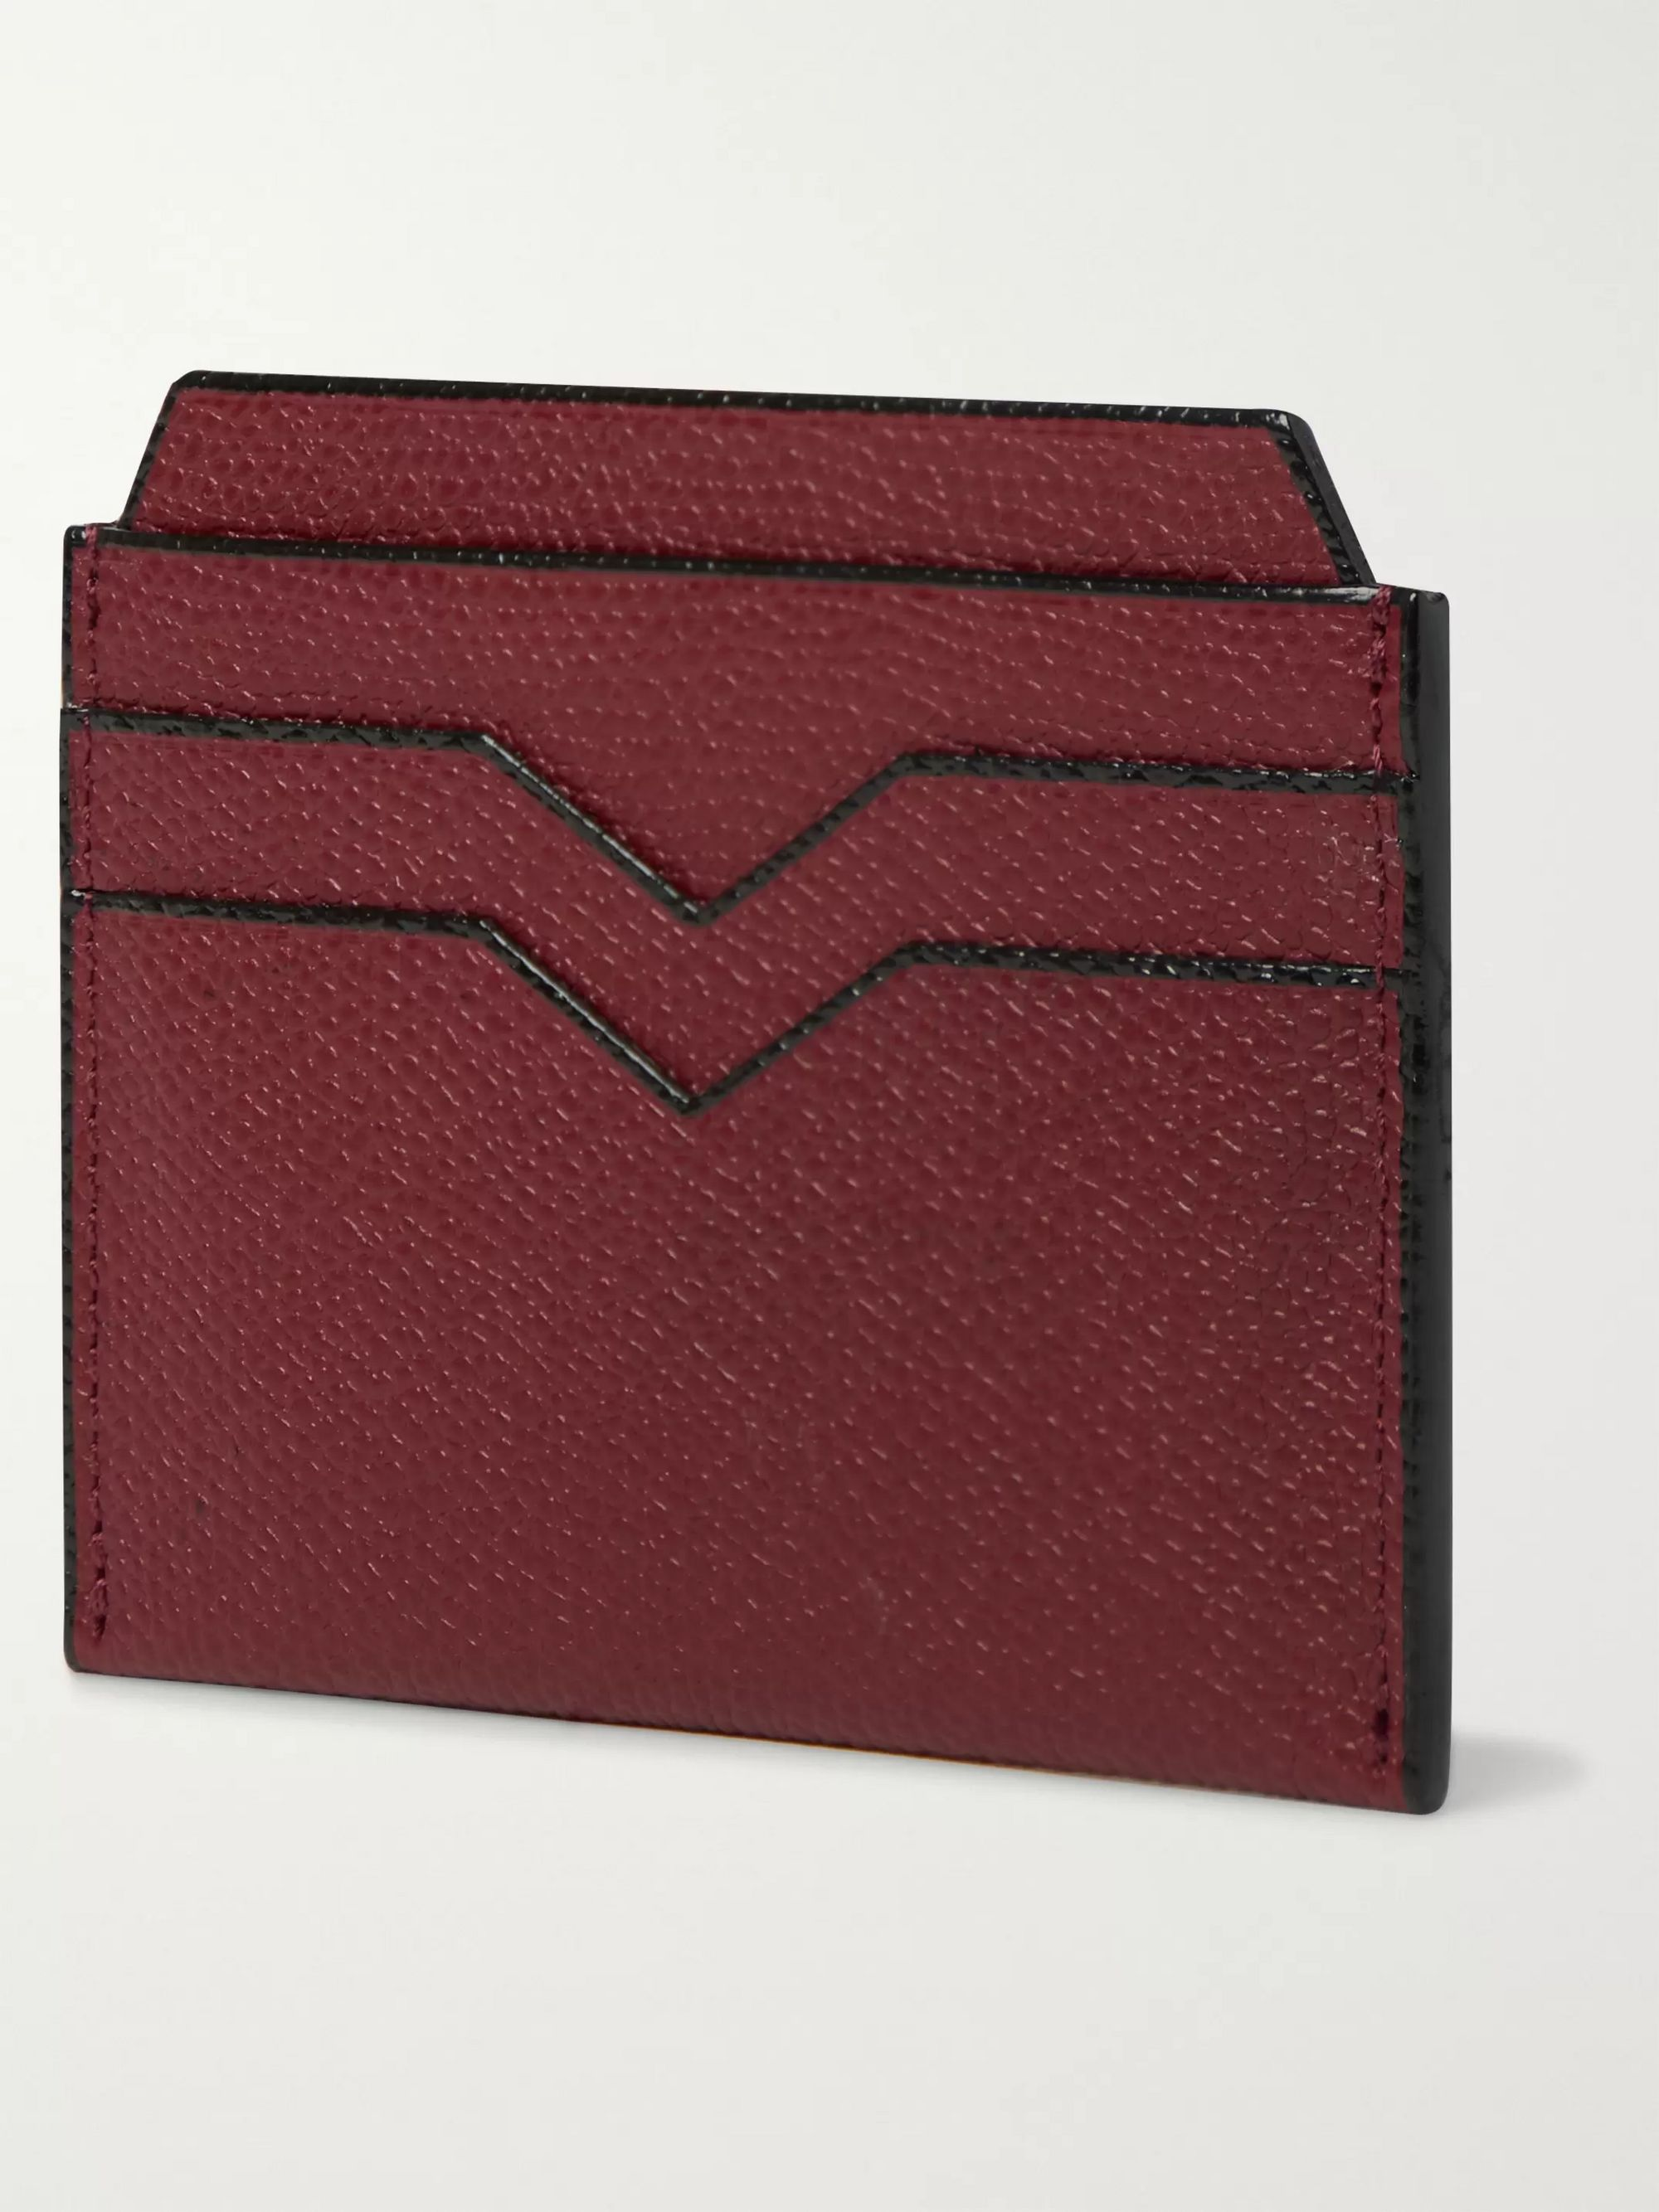 Valextra Pebble-Grain Leather Cardholder